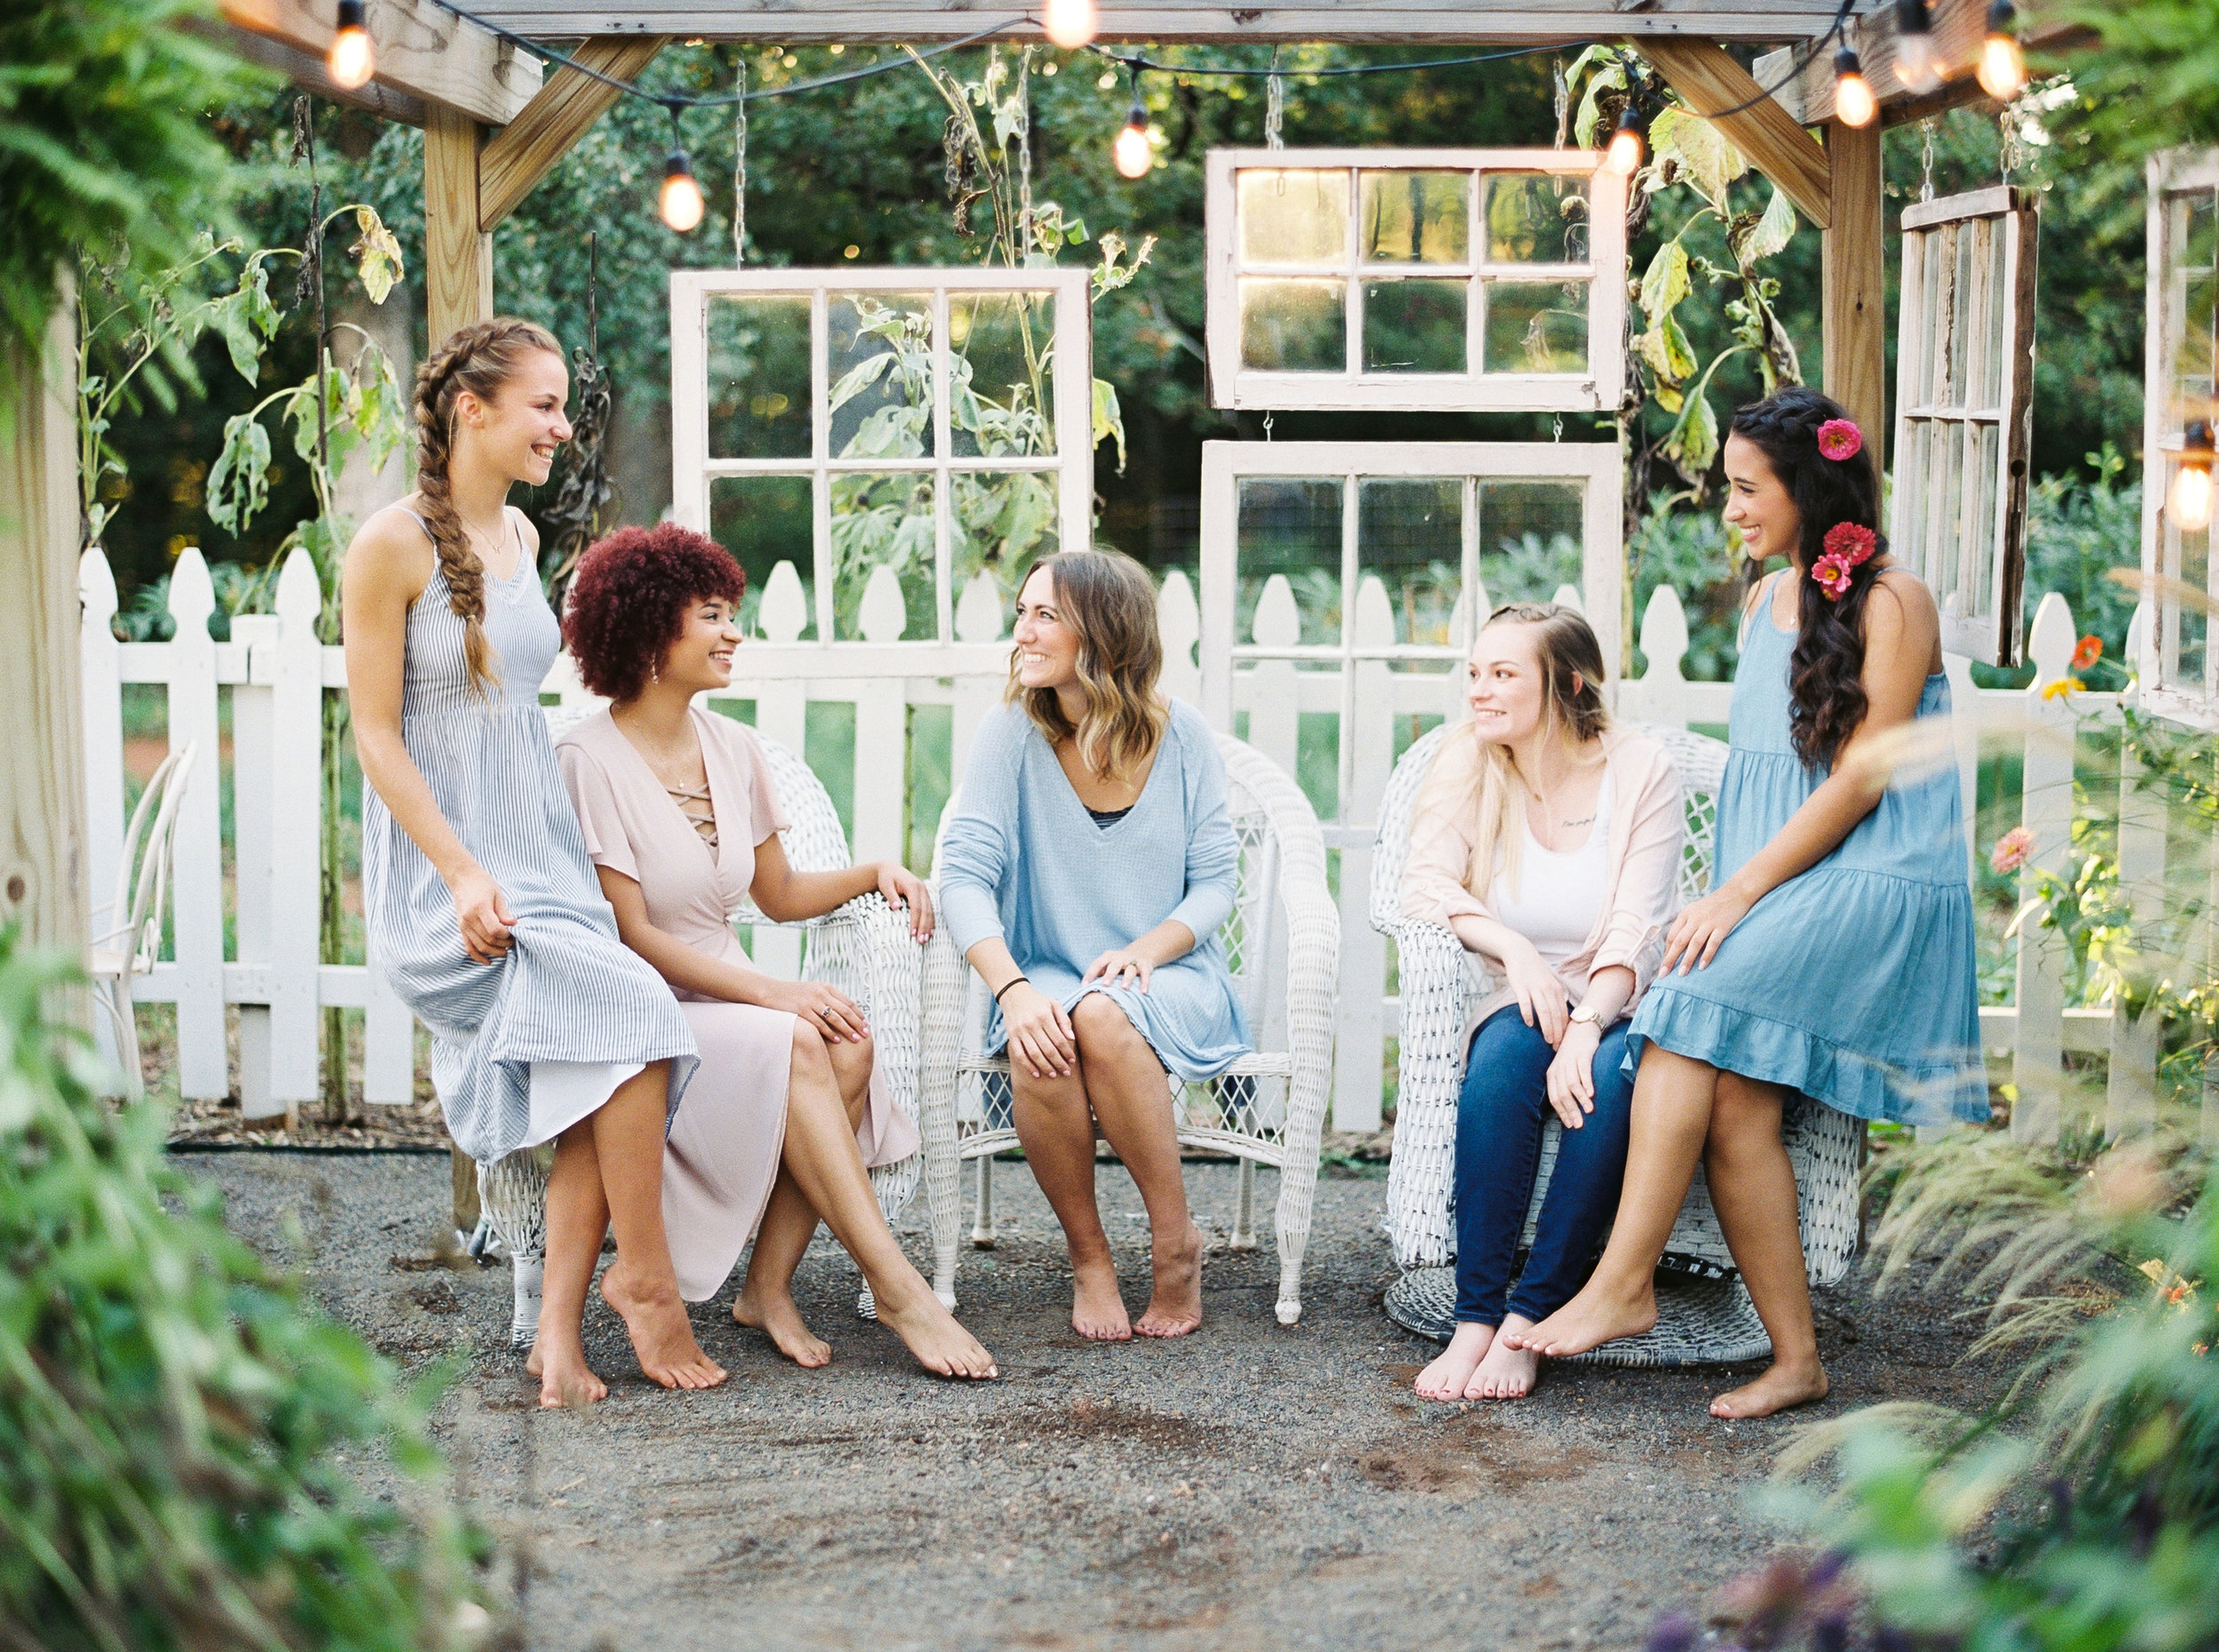 The Kindred -  an online discipleship community for women